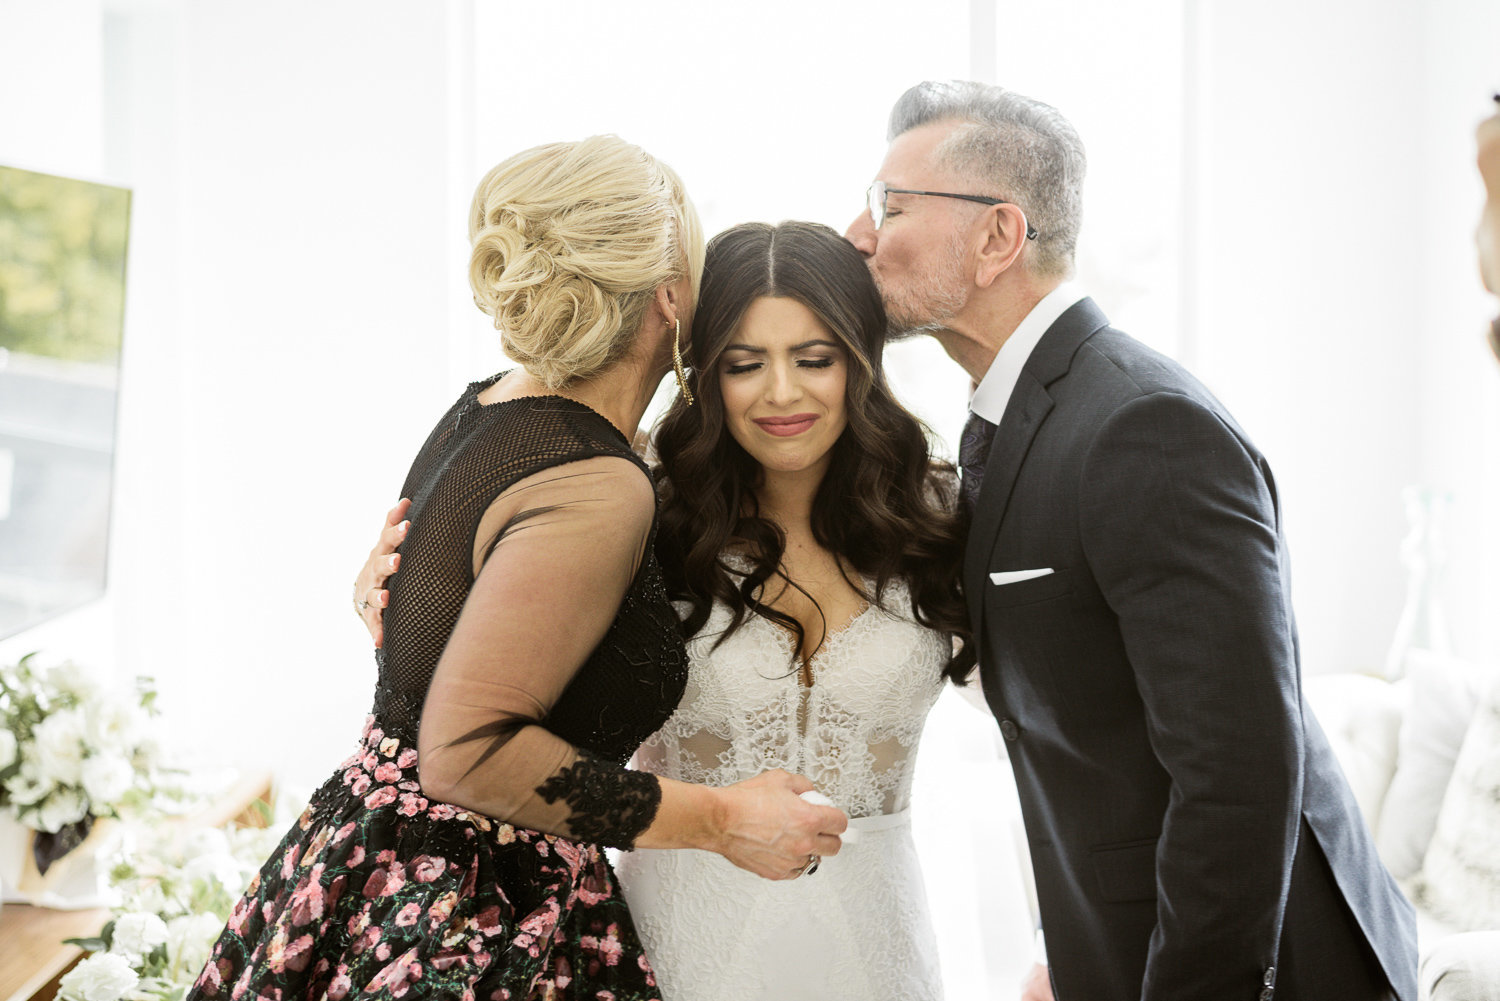 Emotional moments between bride and parents